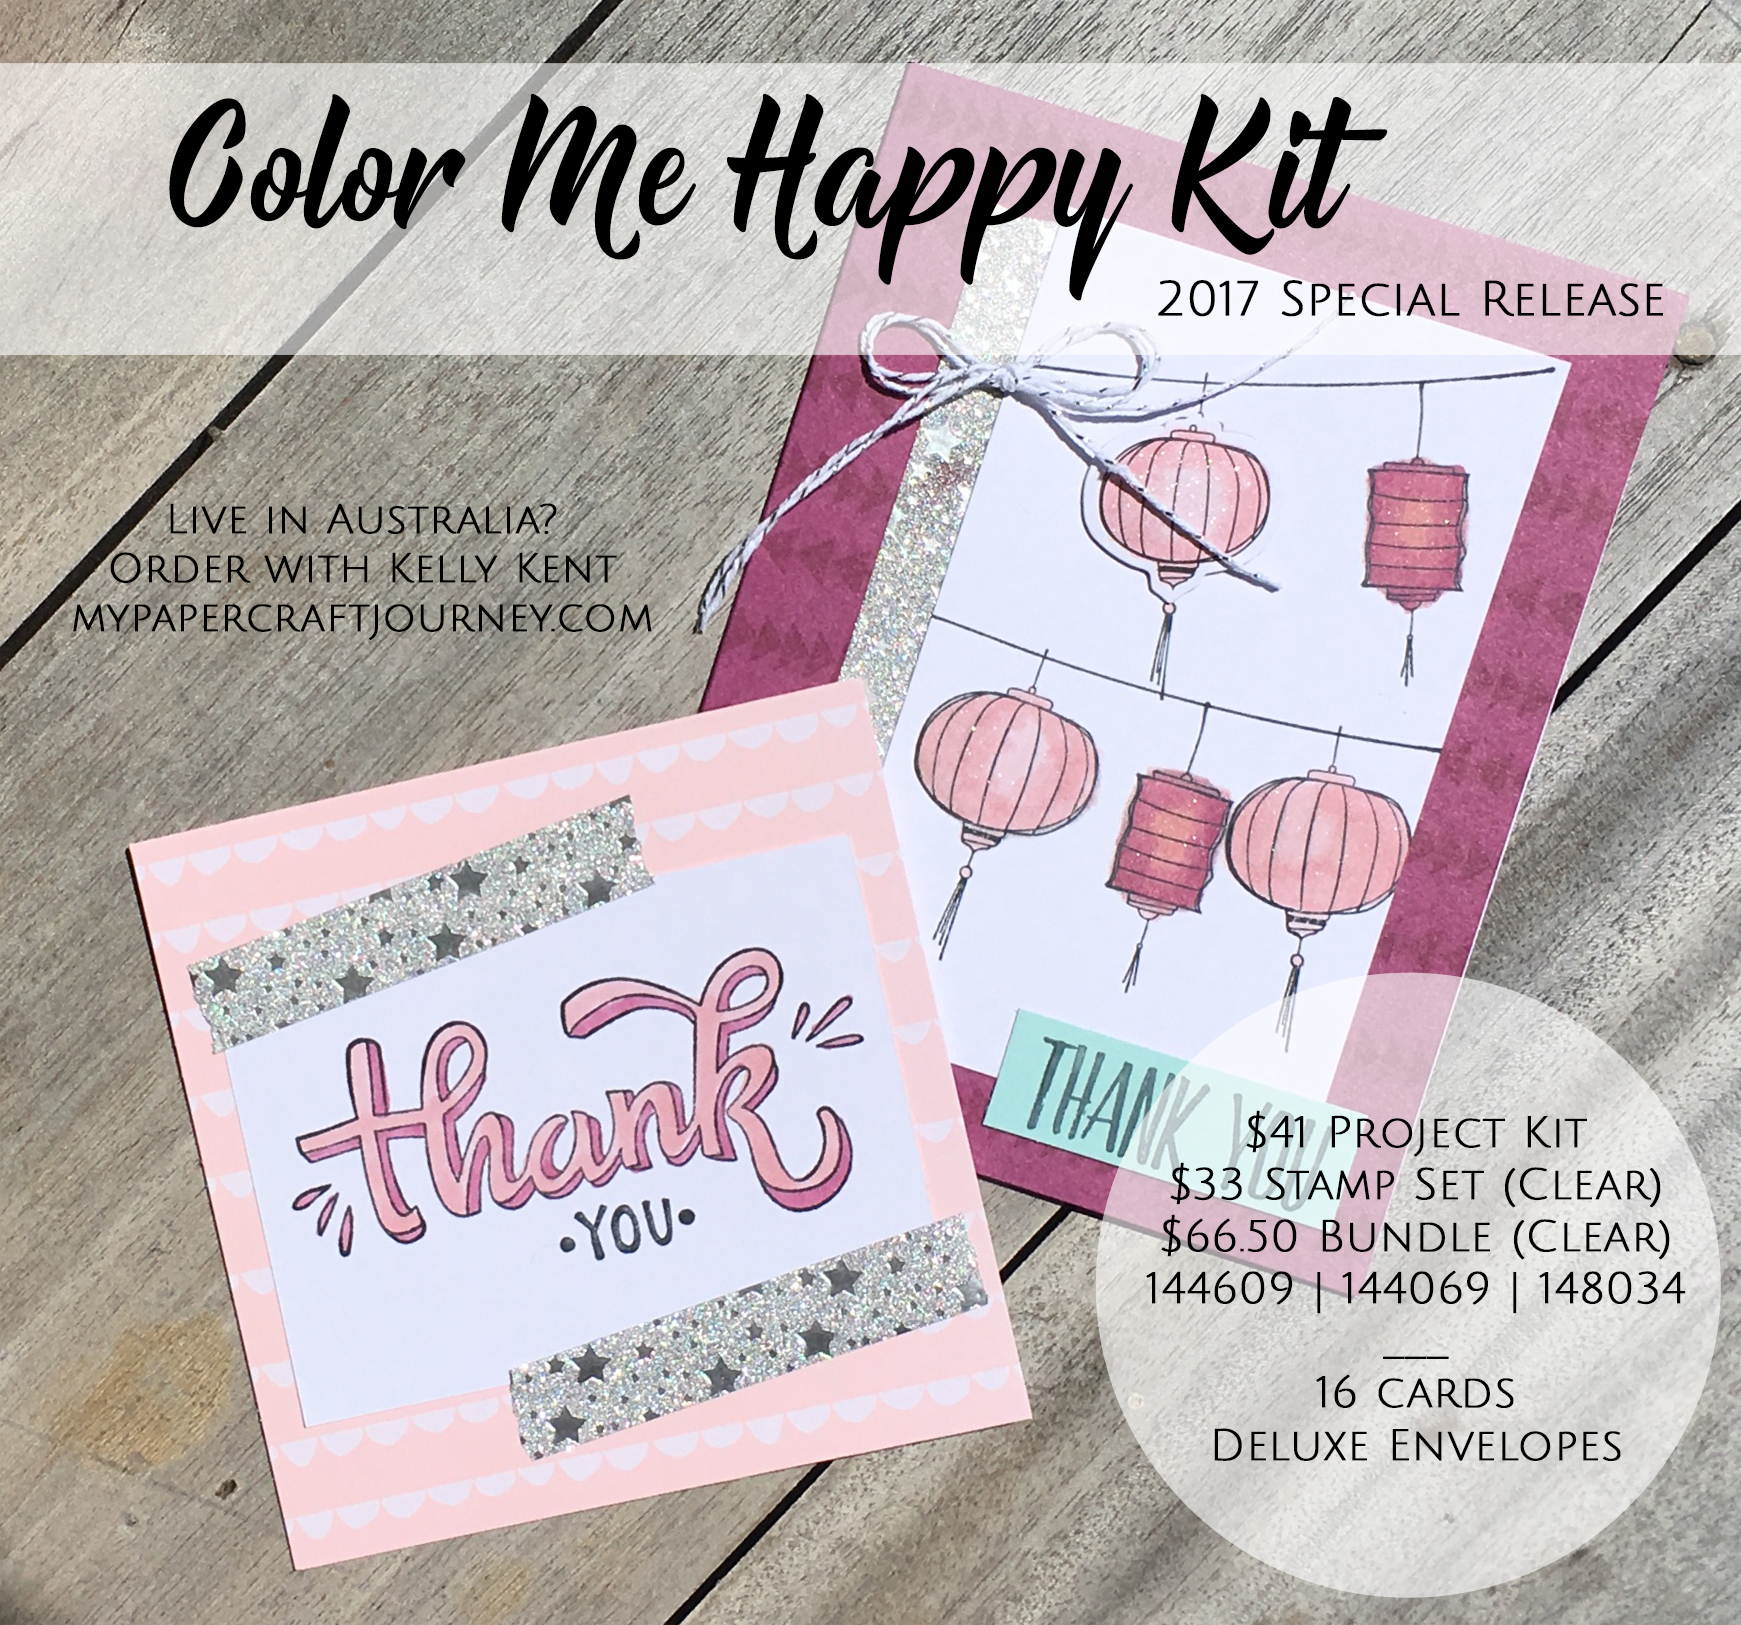 Color Me Happy Plus Used Colour Me Happy Stamp Set Stampin Up Project Kits X 2